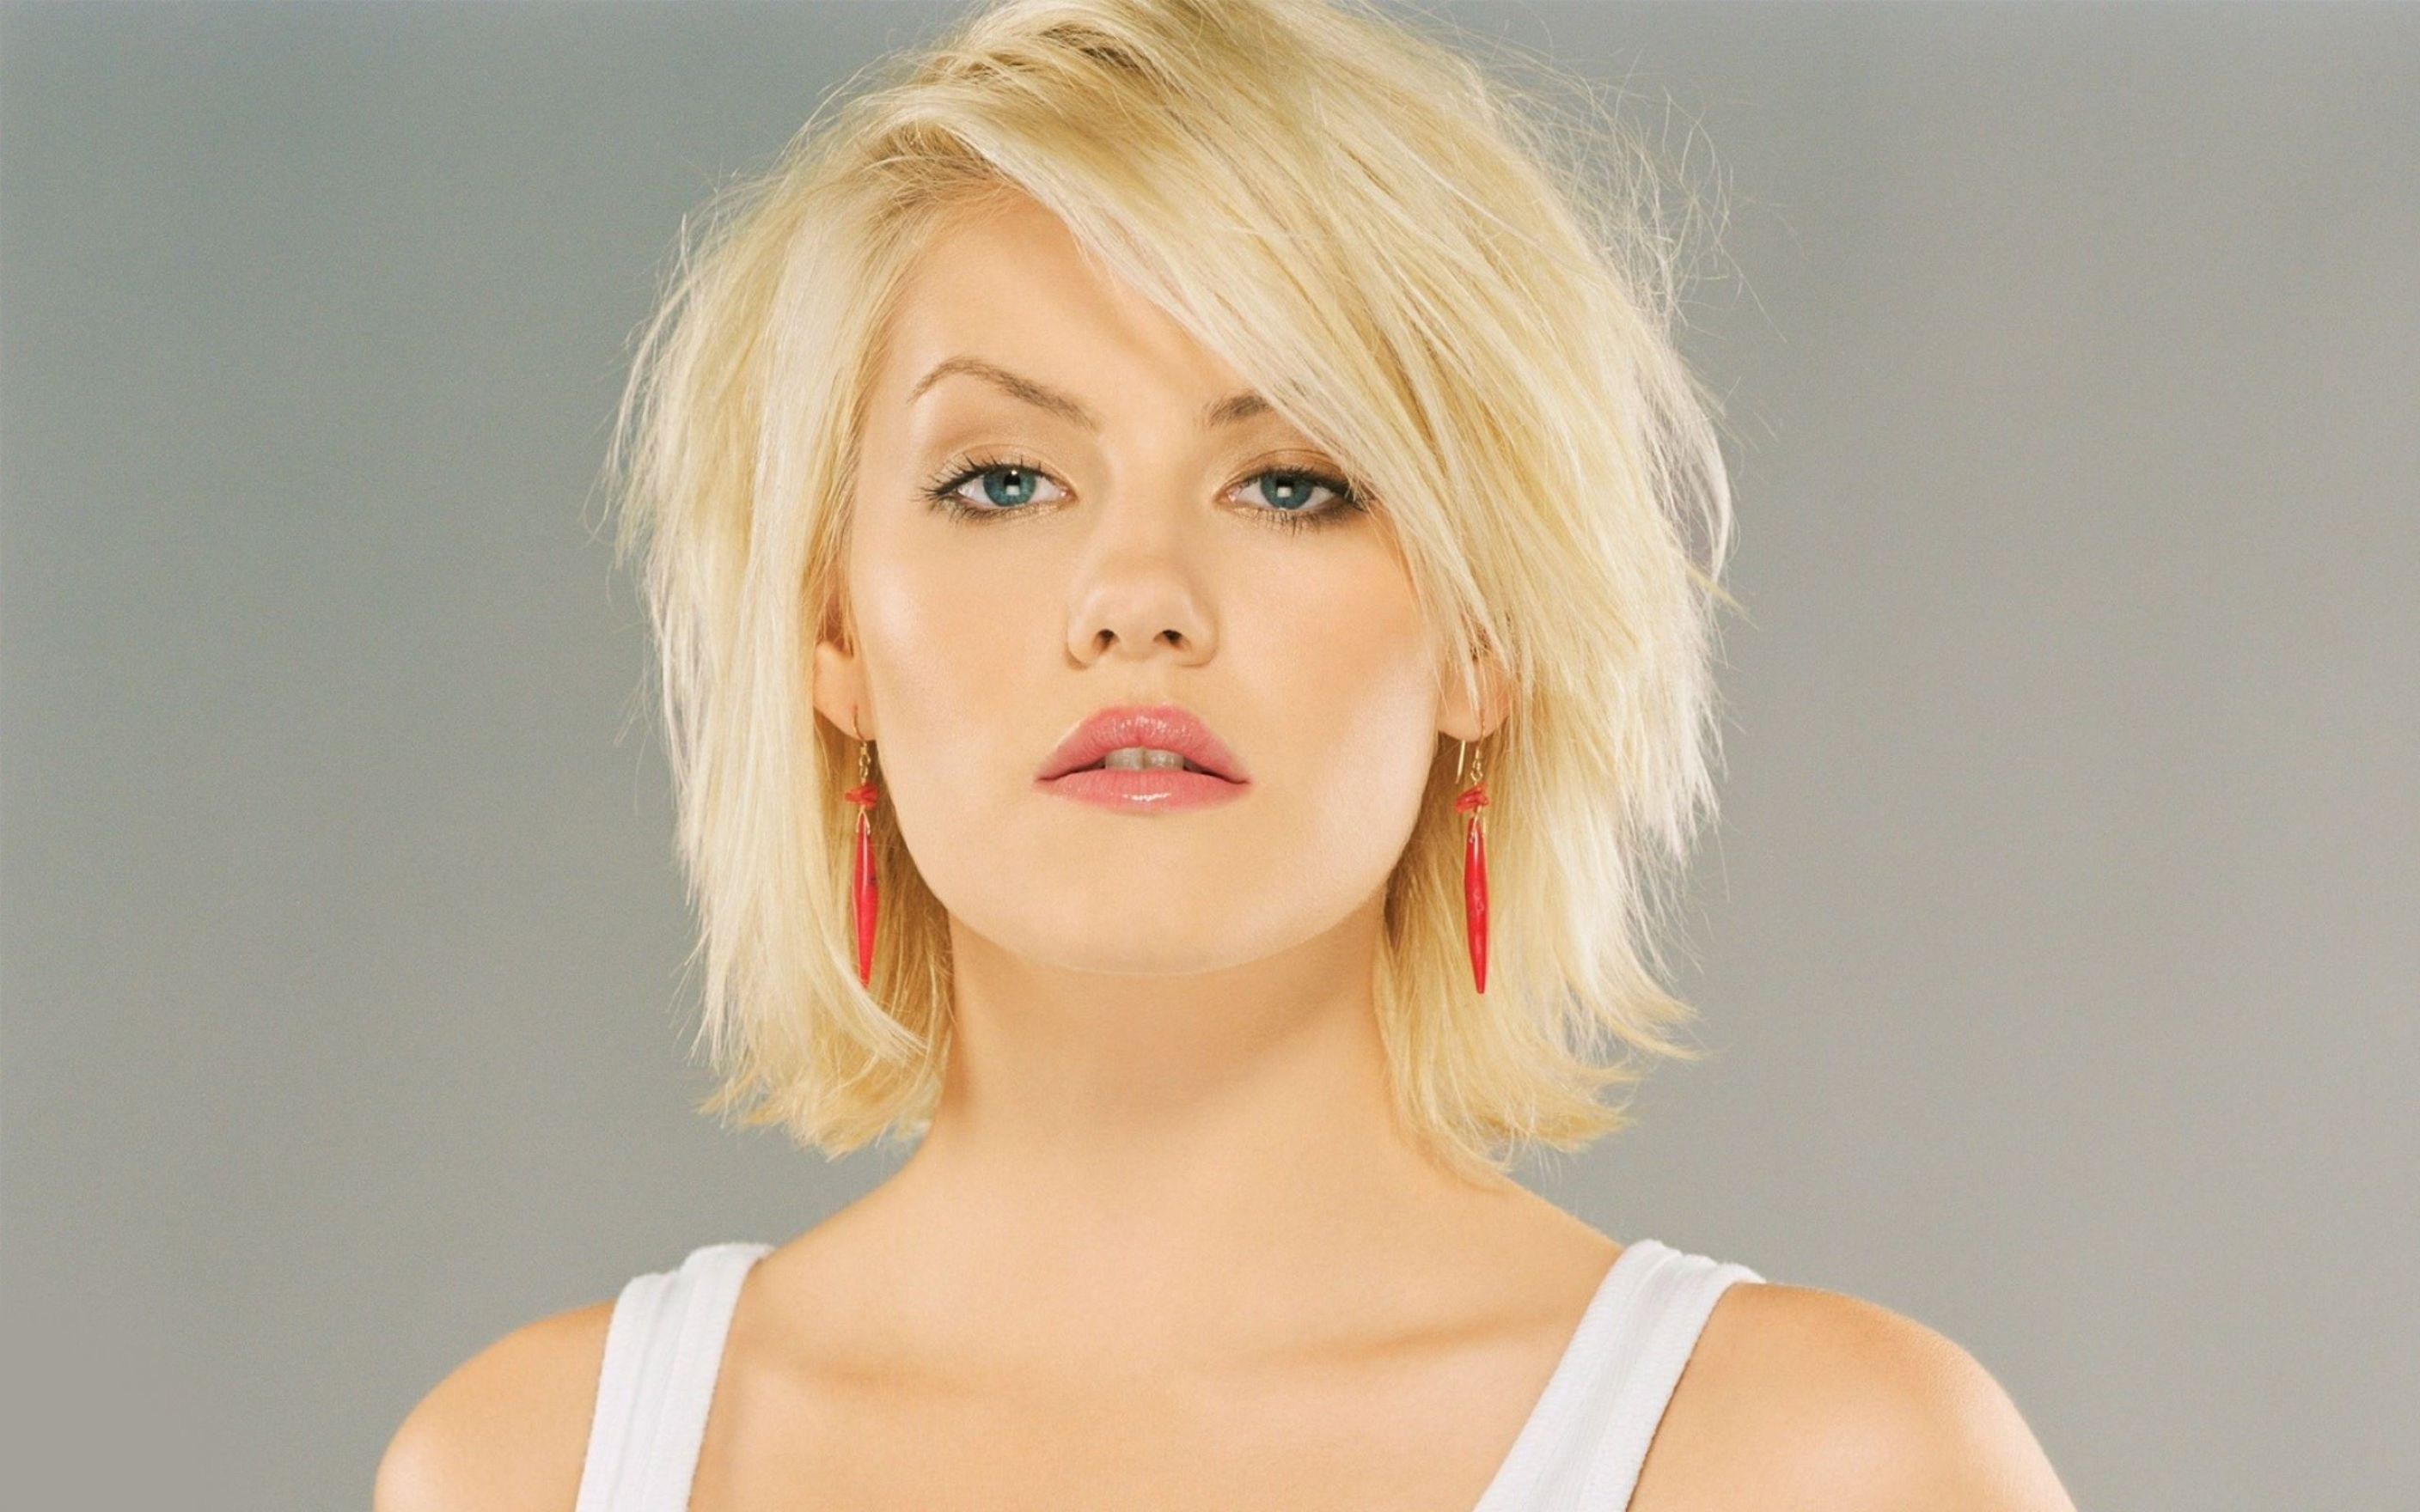 Download free HD Elisha Cuthbert Beautiful Wallpaper, image